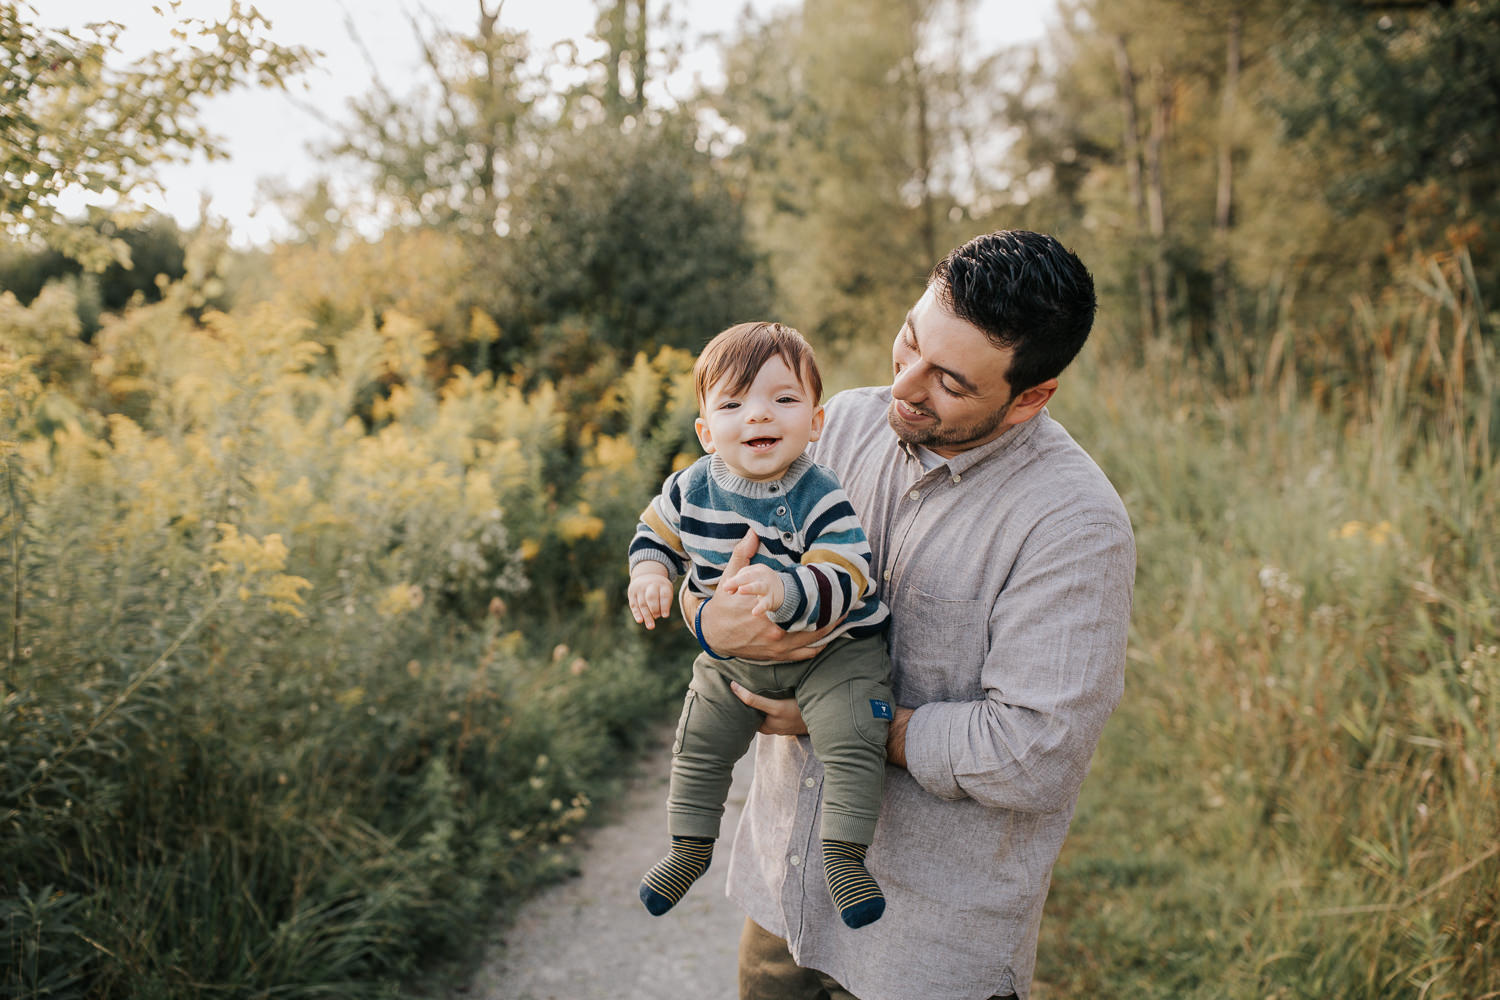 dad standing in golden field holding 1 year old baby boy, son smiling at camera, father smiling at him - York Region Lifestyle Photos